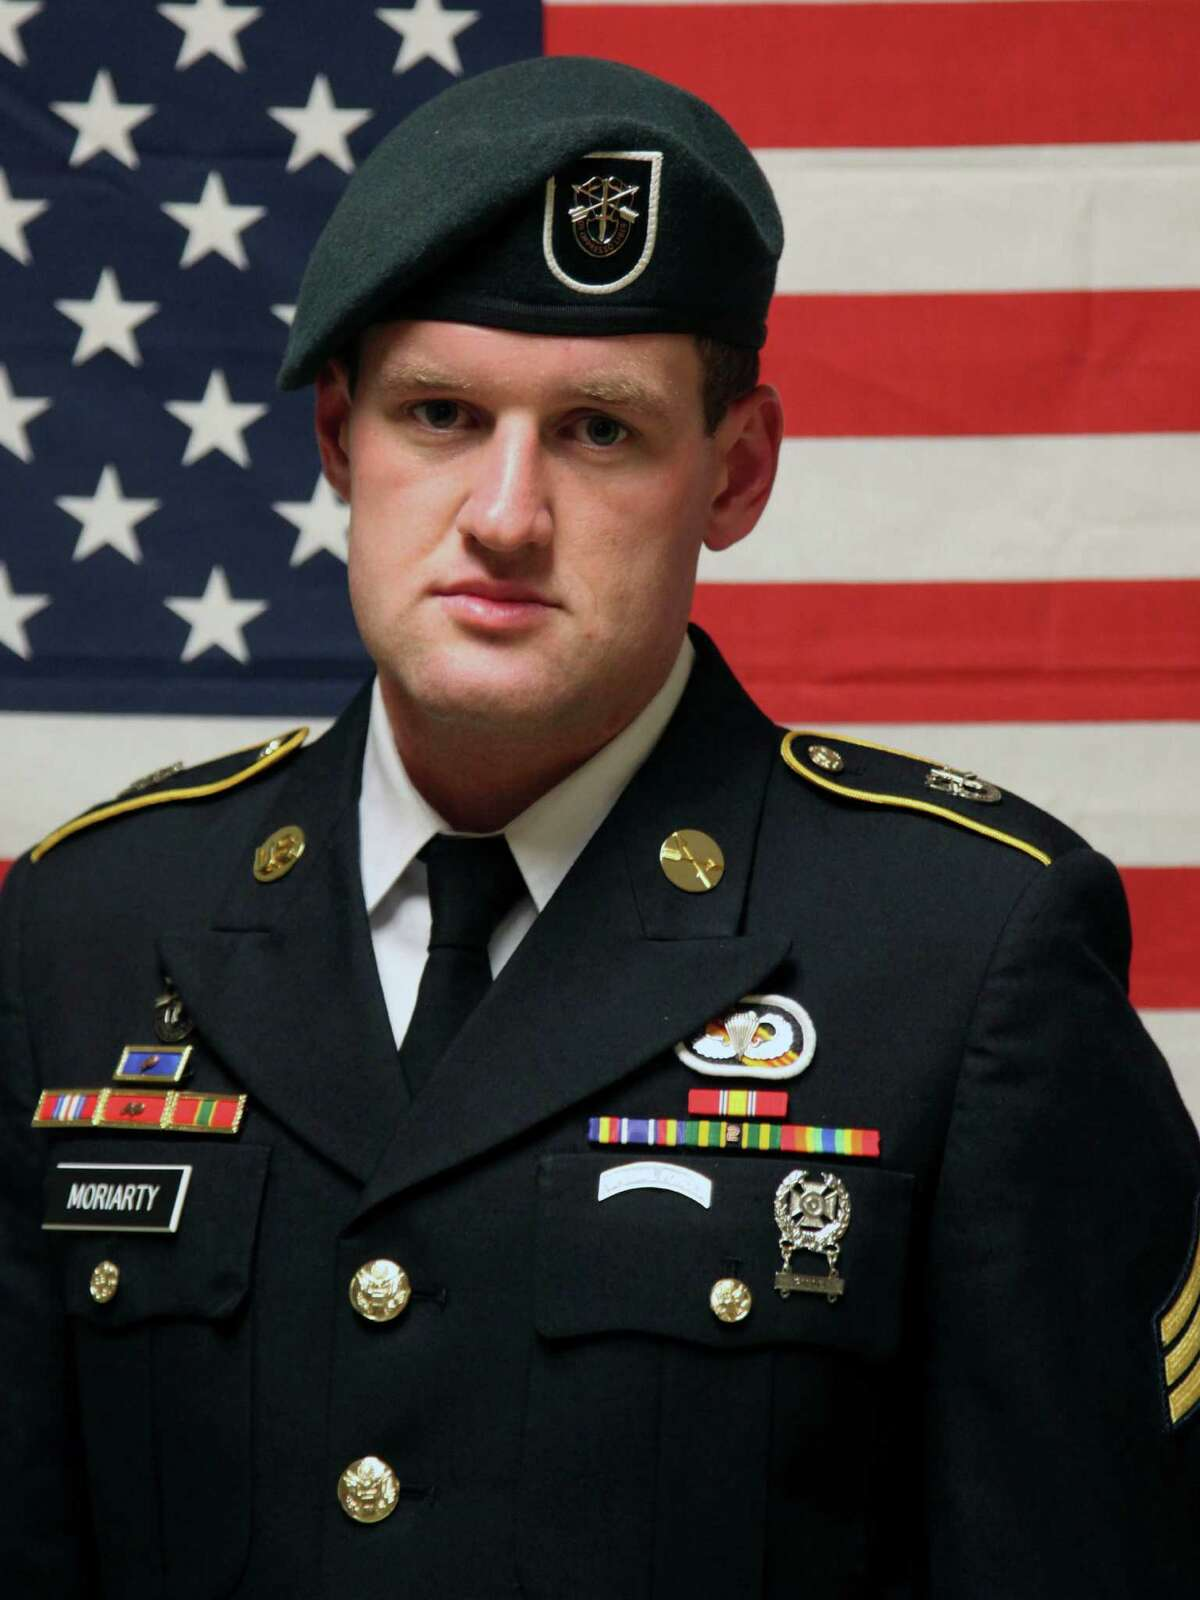 Kerrville native Staff Sgt. James F. Moriarty, seen in an undated photo provided Sunday, Nov. 6, 2016 by the Army Special Operations Command, was killed Friday in Jordan. Moriarty had been in the Army more than five years and was in his second overseas deployment, according to the Army release identifying him.